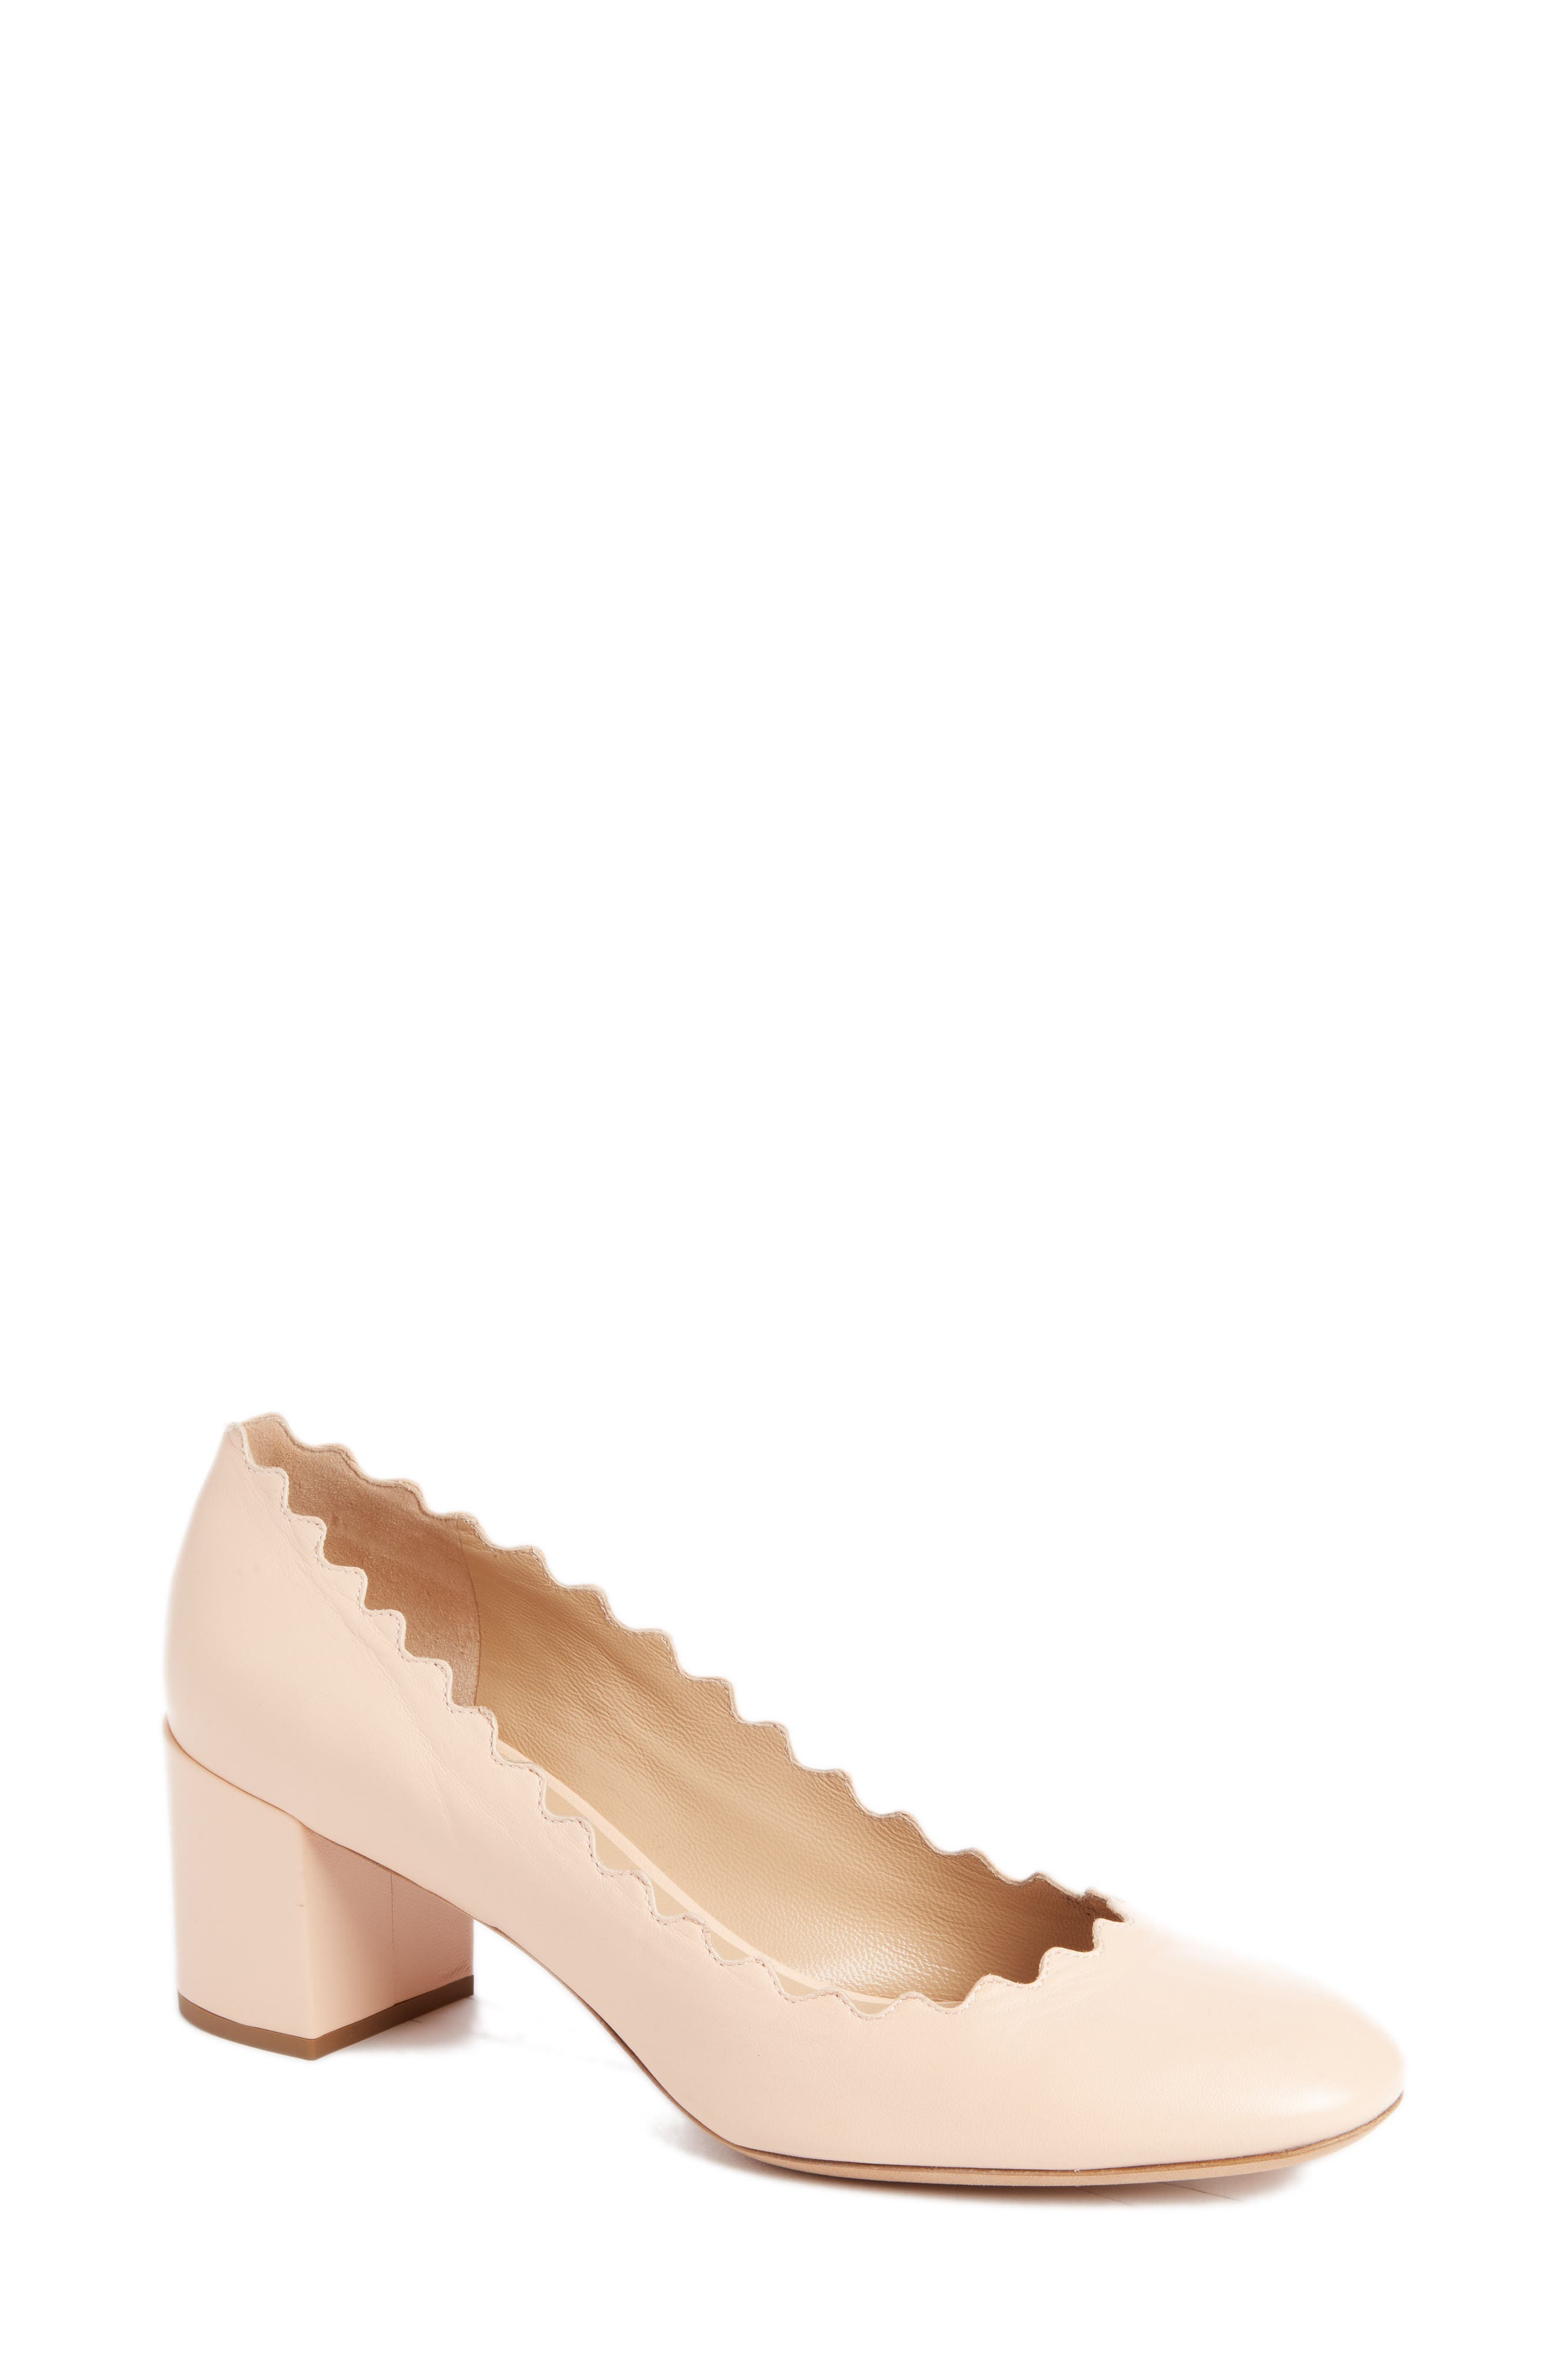 Lauren Scalloped Pump,                             Main thumbnail 1, color,                             Honey Nude